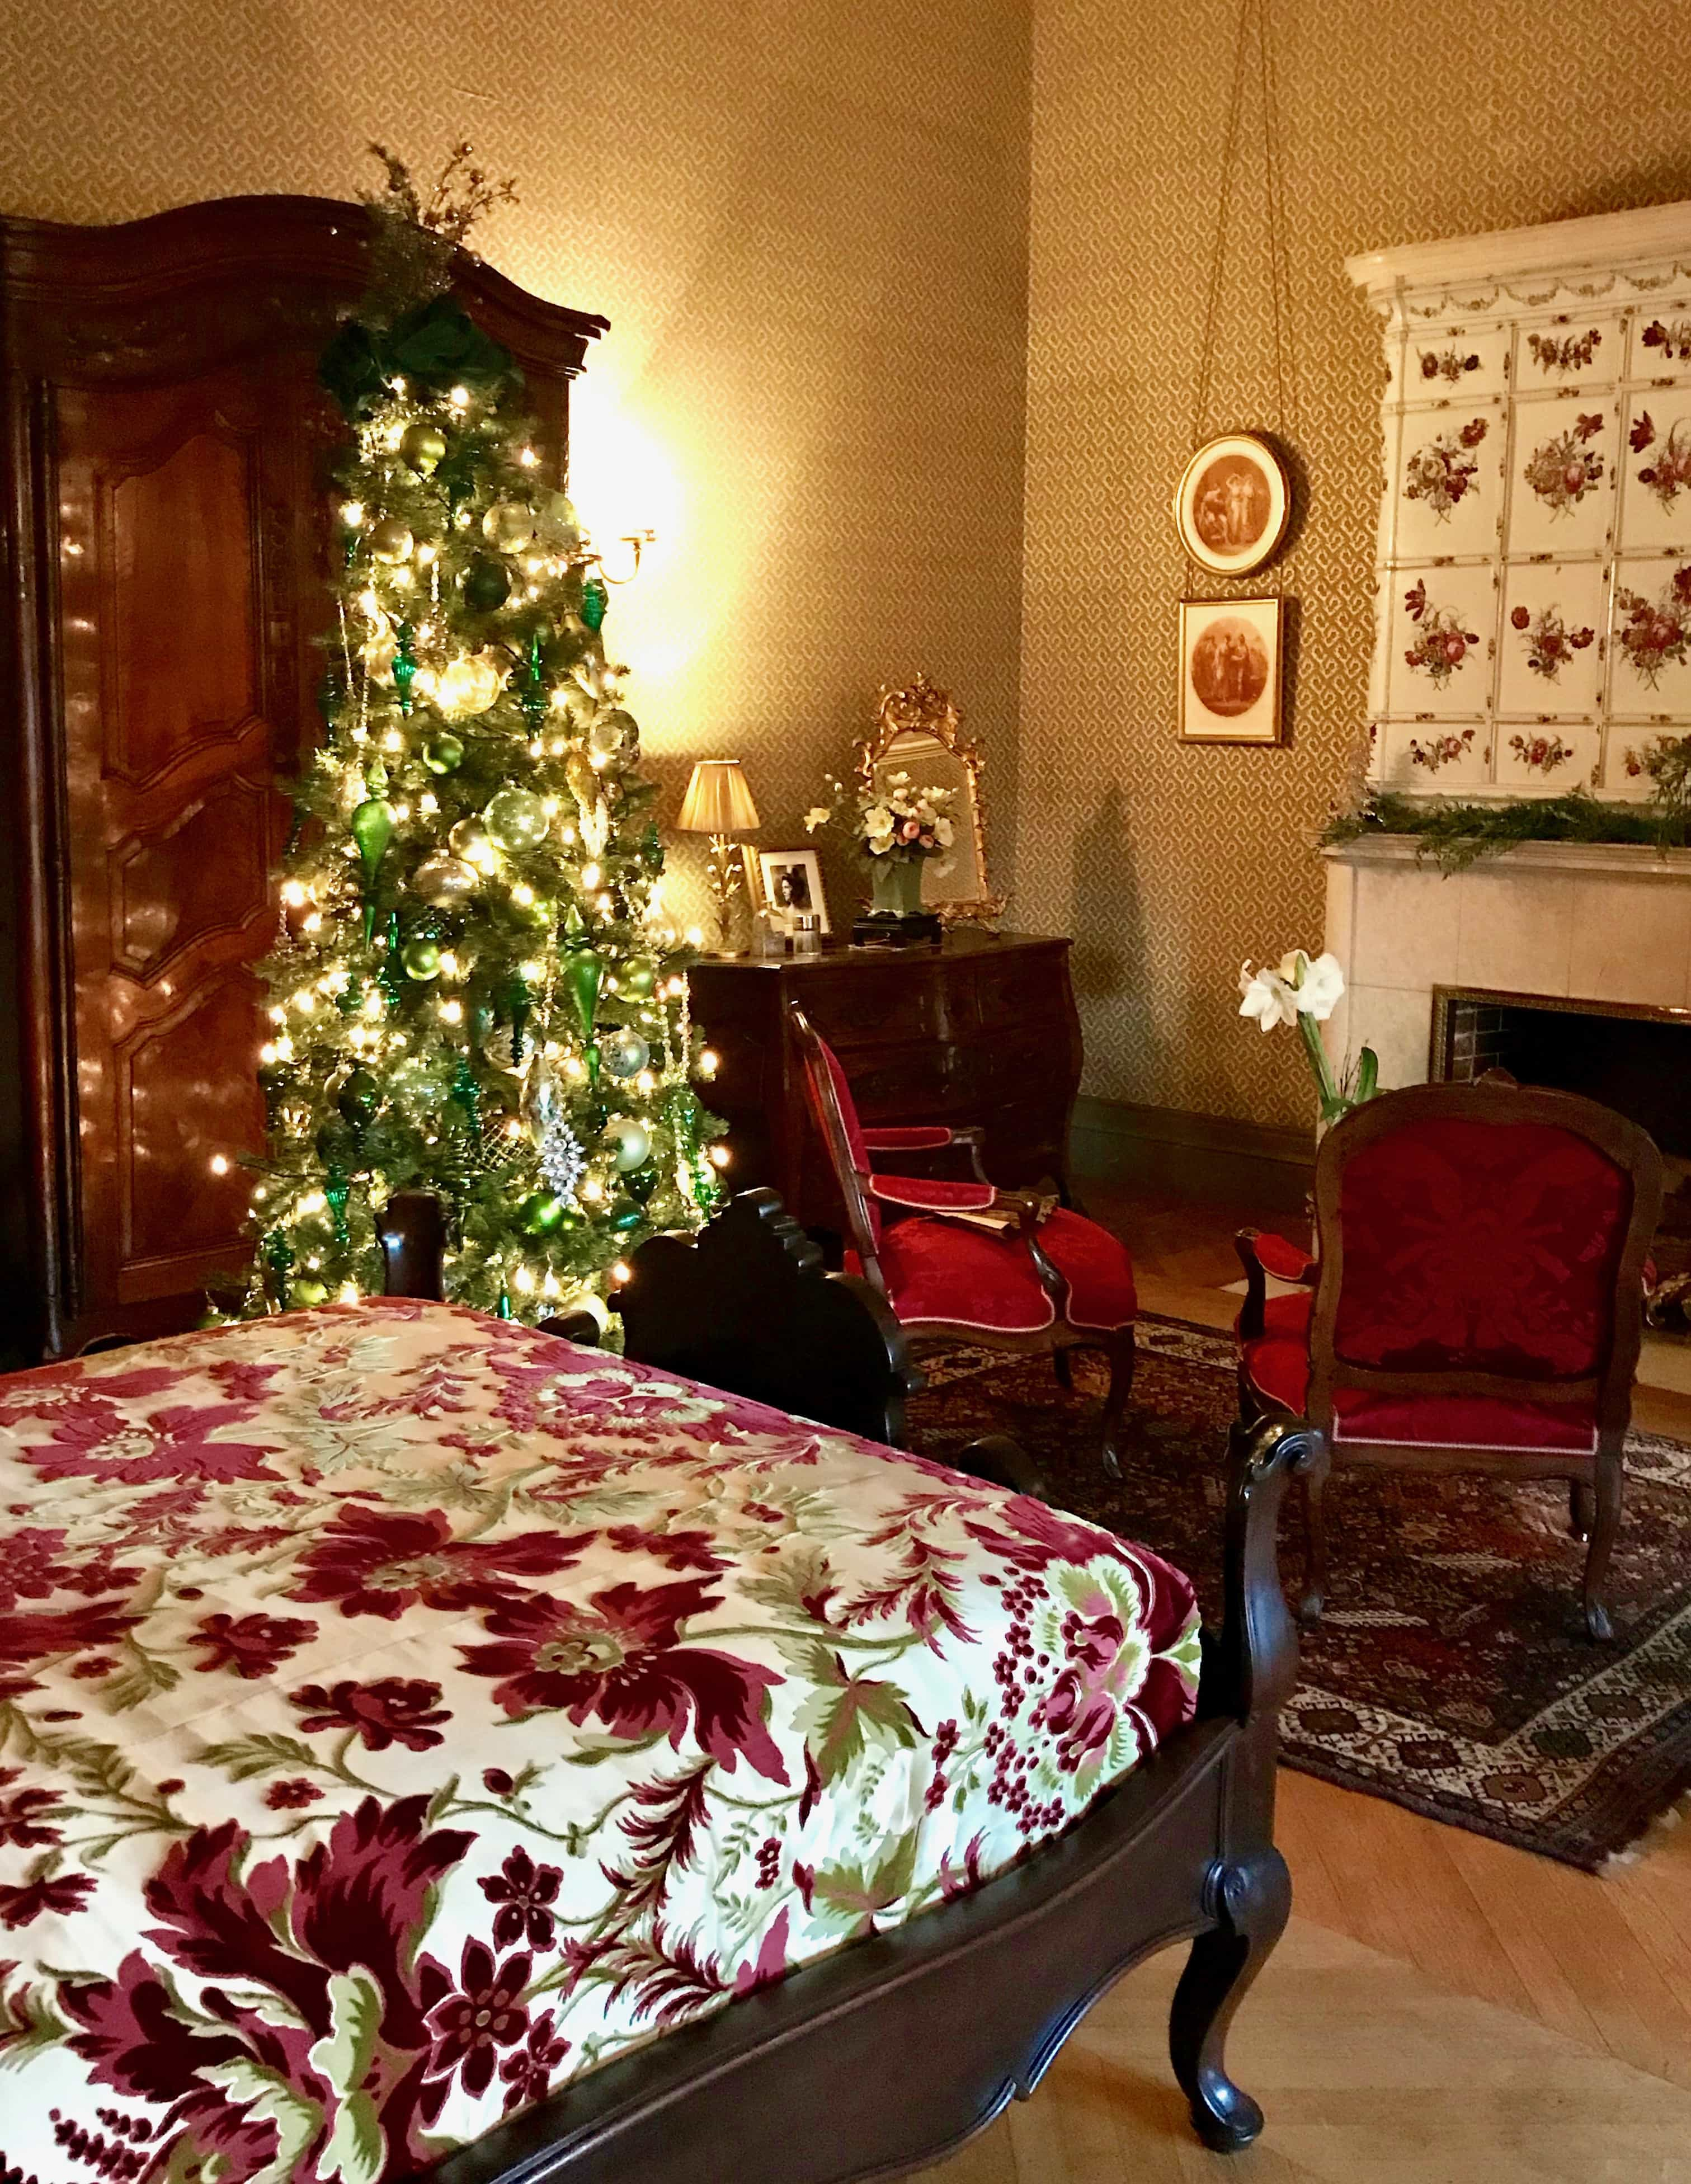 Christmas tree in bedroom at Biltmore House